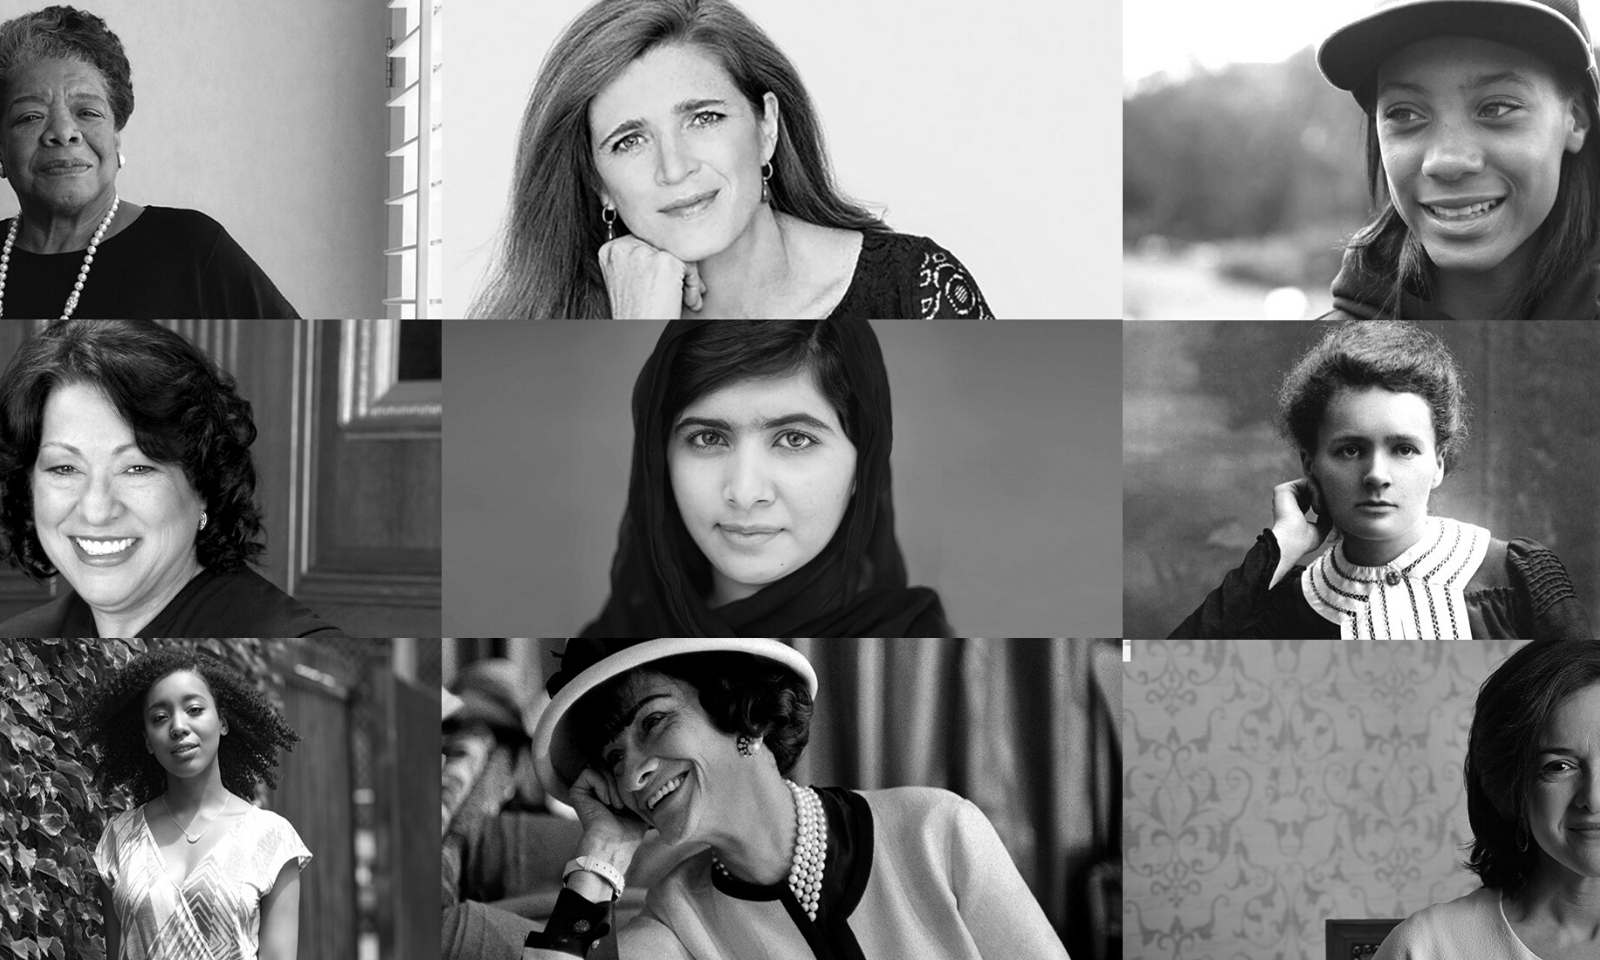 B&W images of women.